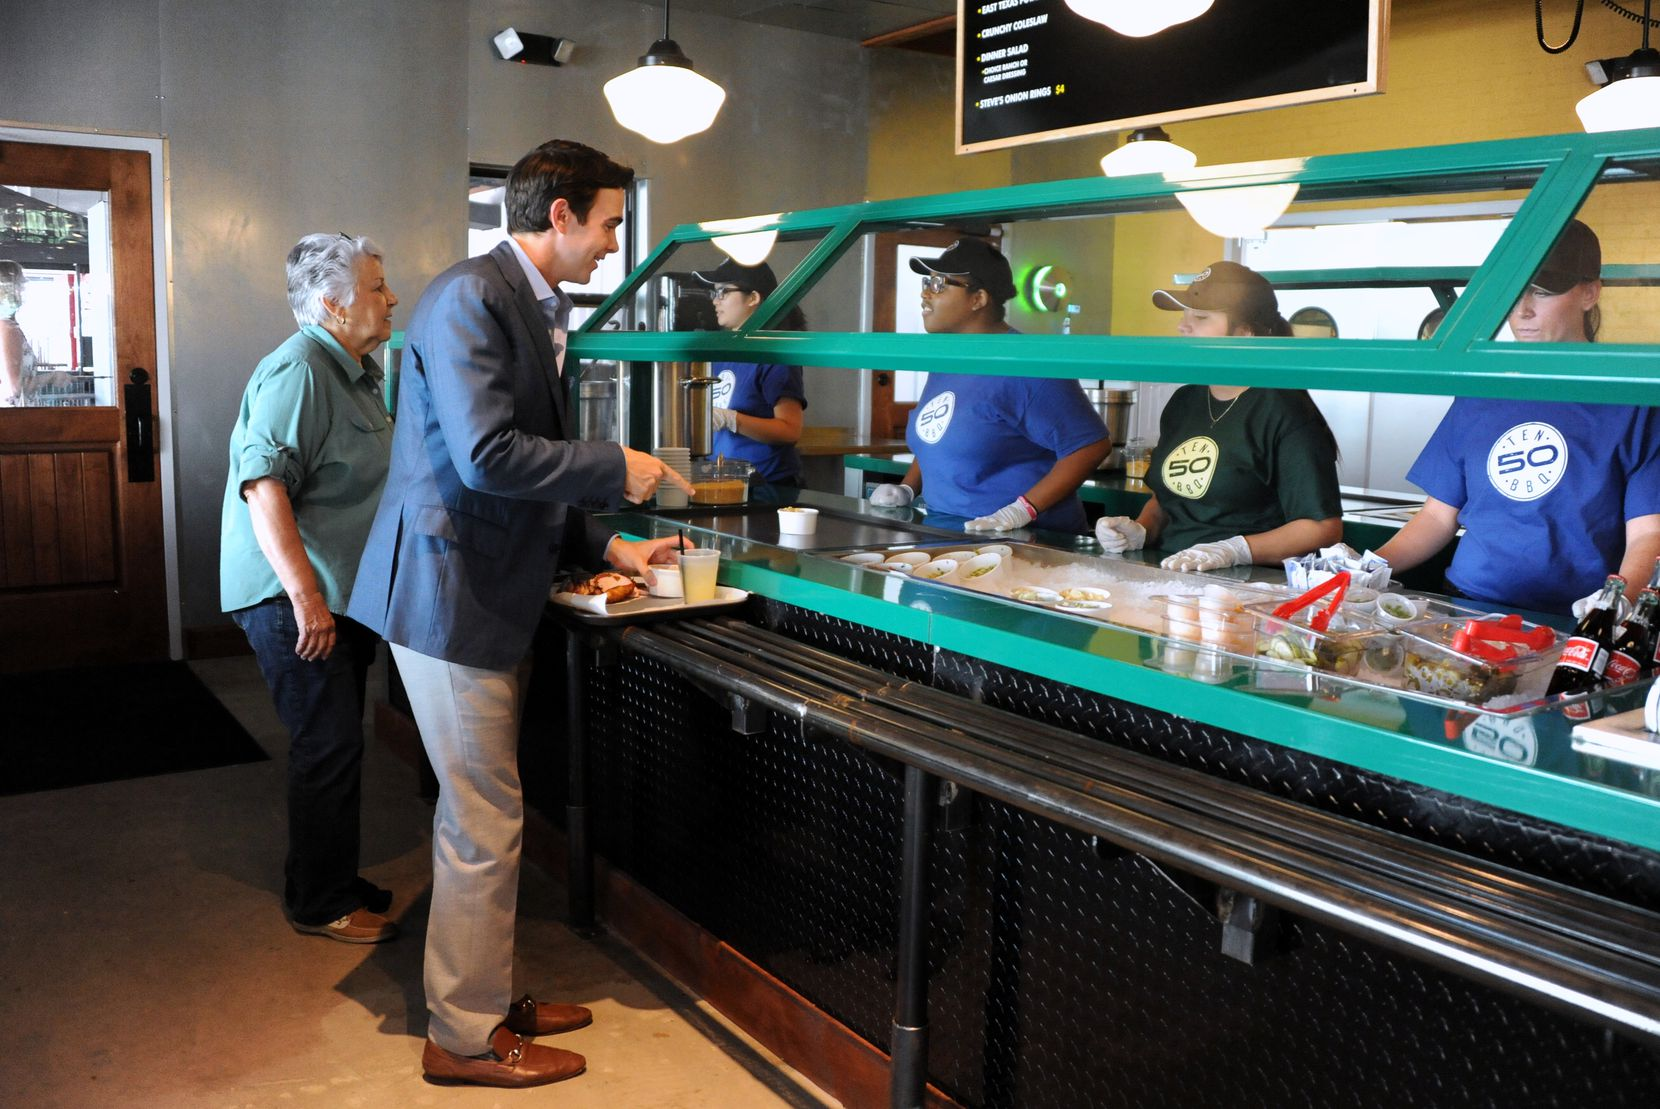 Guests order sides in the buffet style line at the new Ten 50 BBQ in Richardson.